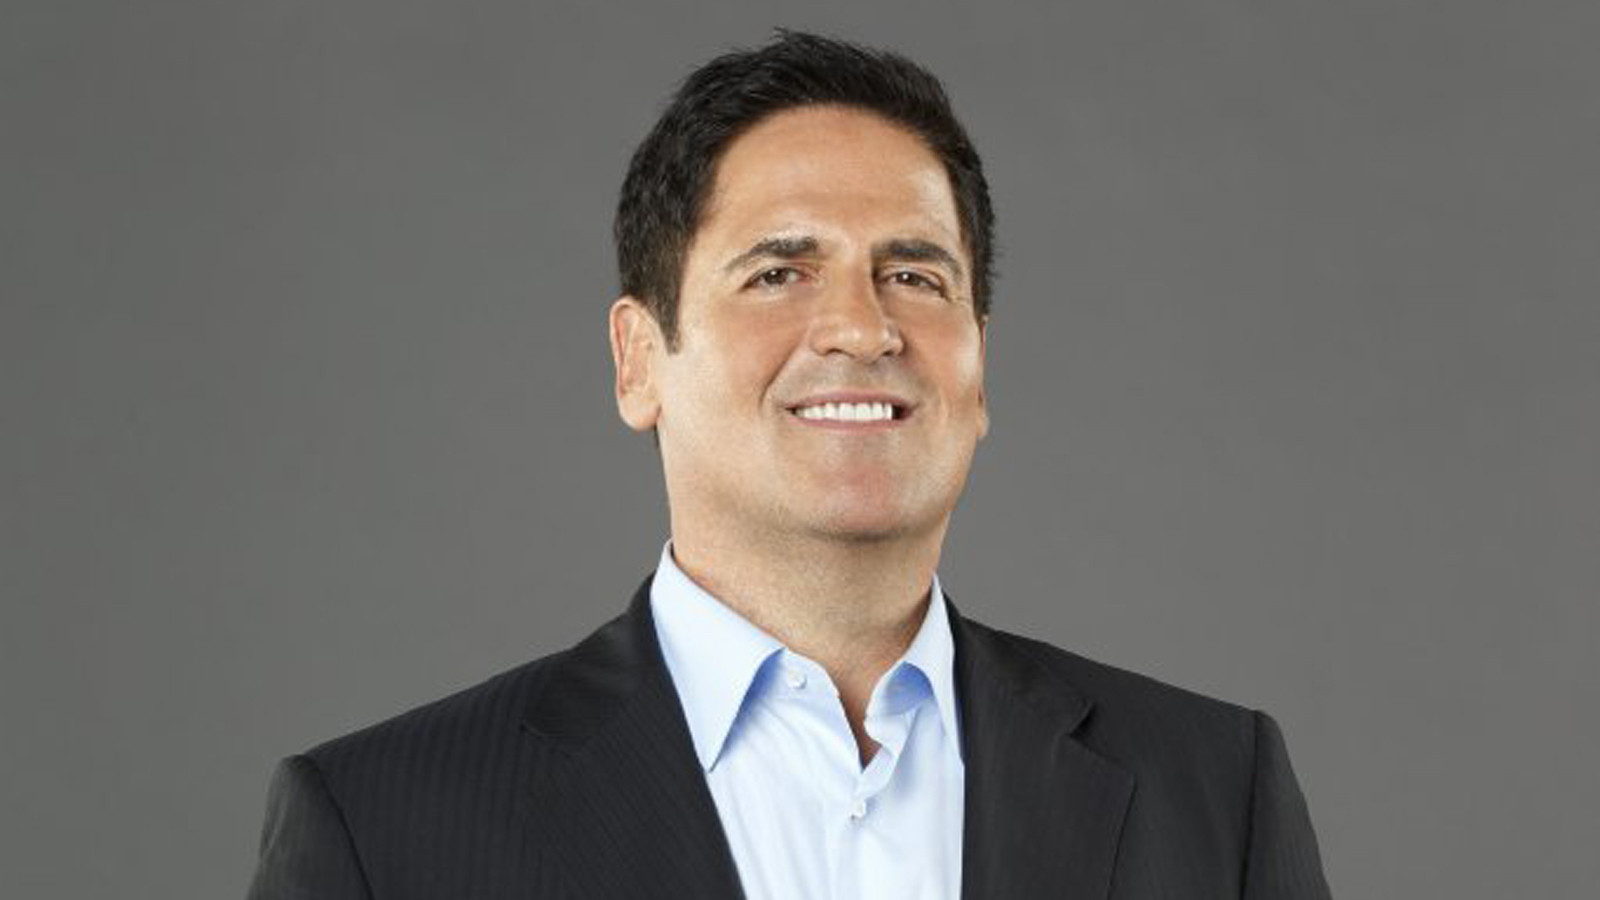 lRelated Sony emails reveal Mark Cuban's anger over 'Shark Tank' compensation talks